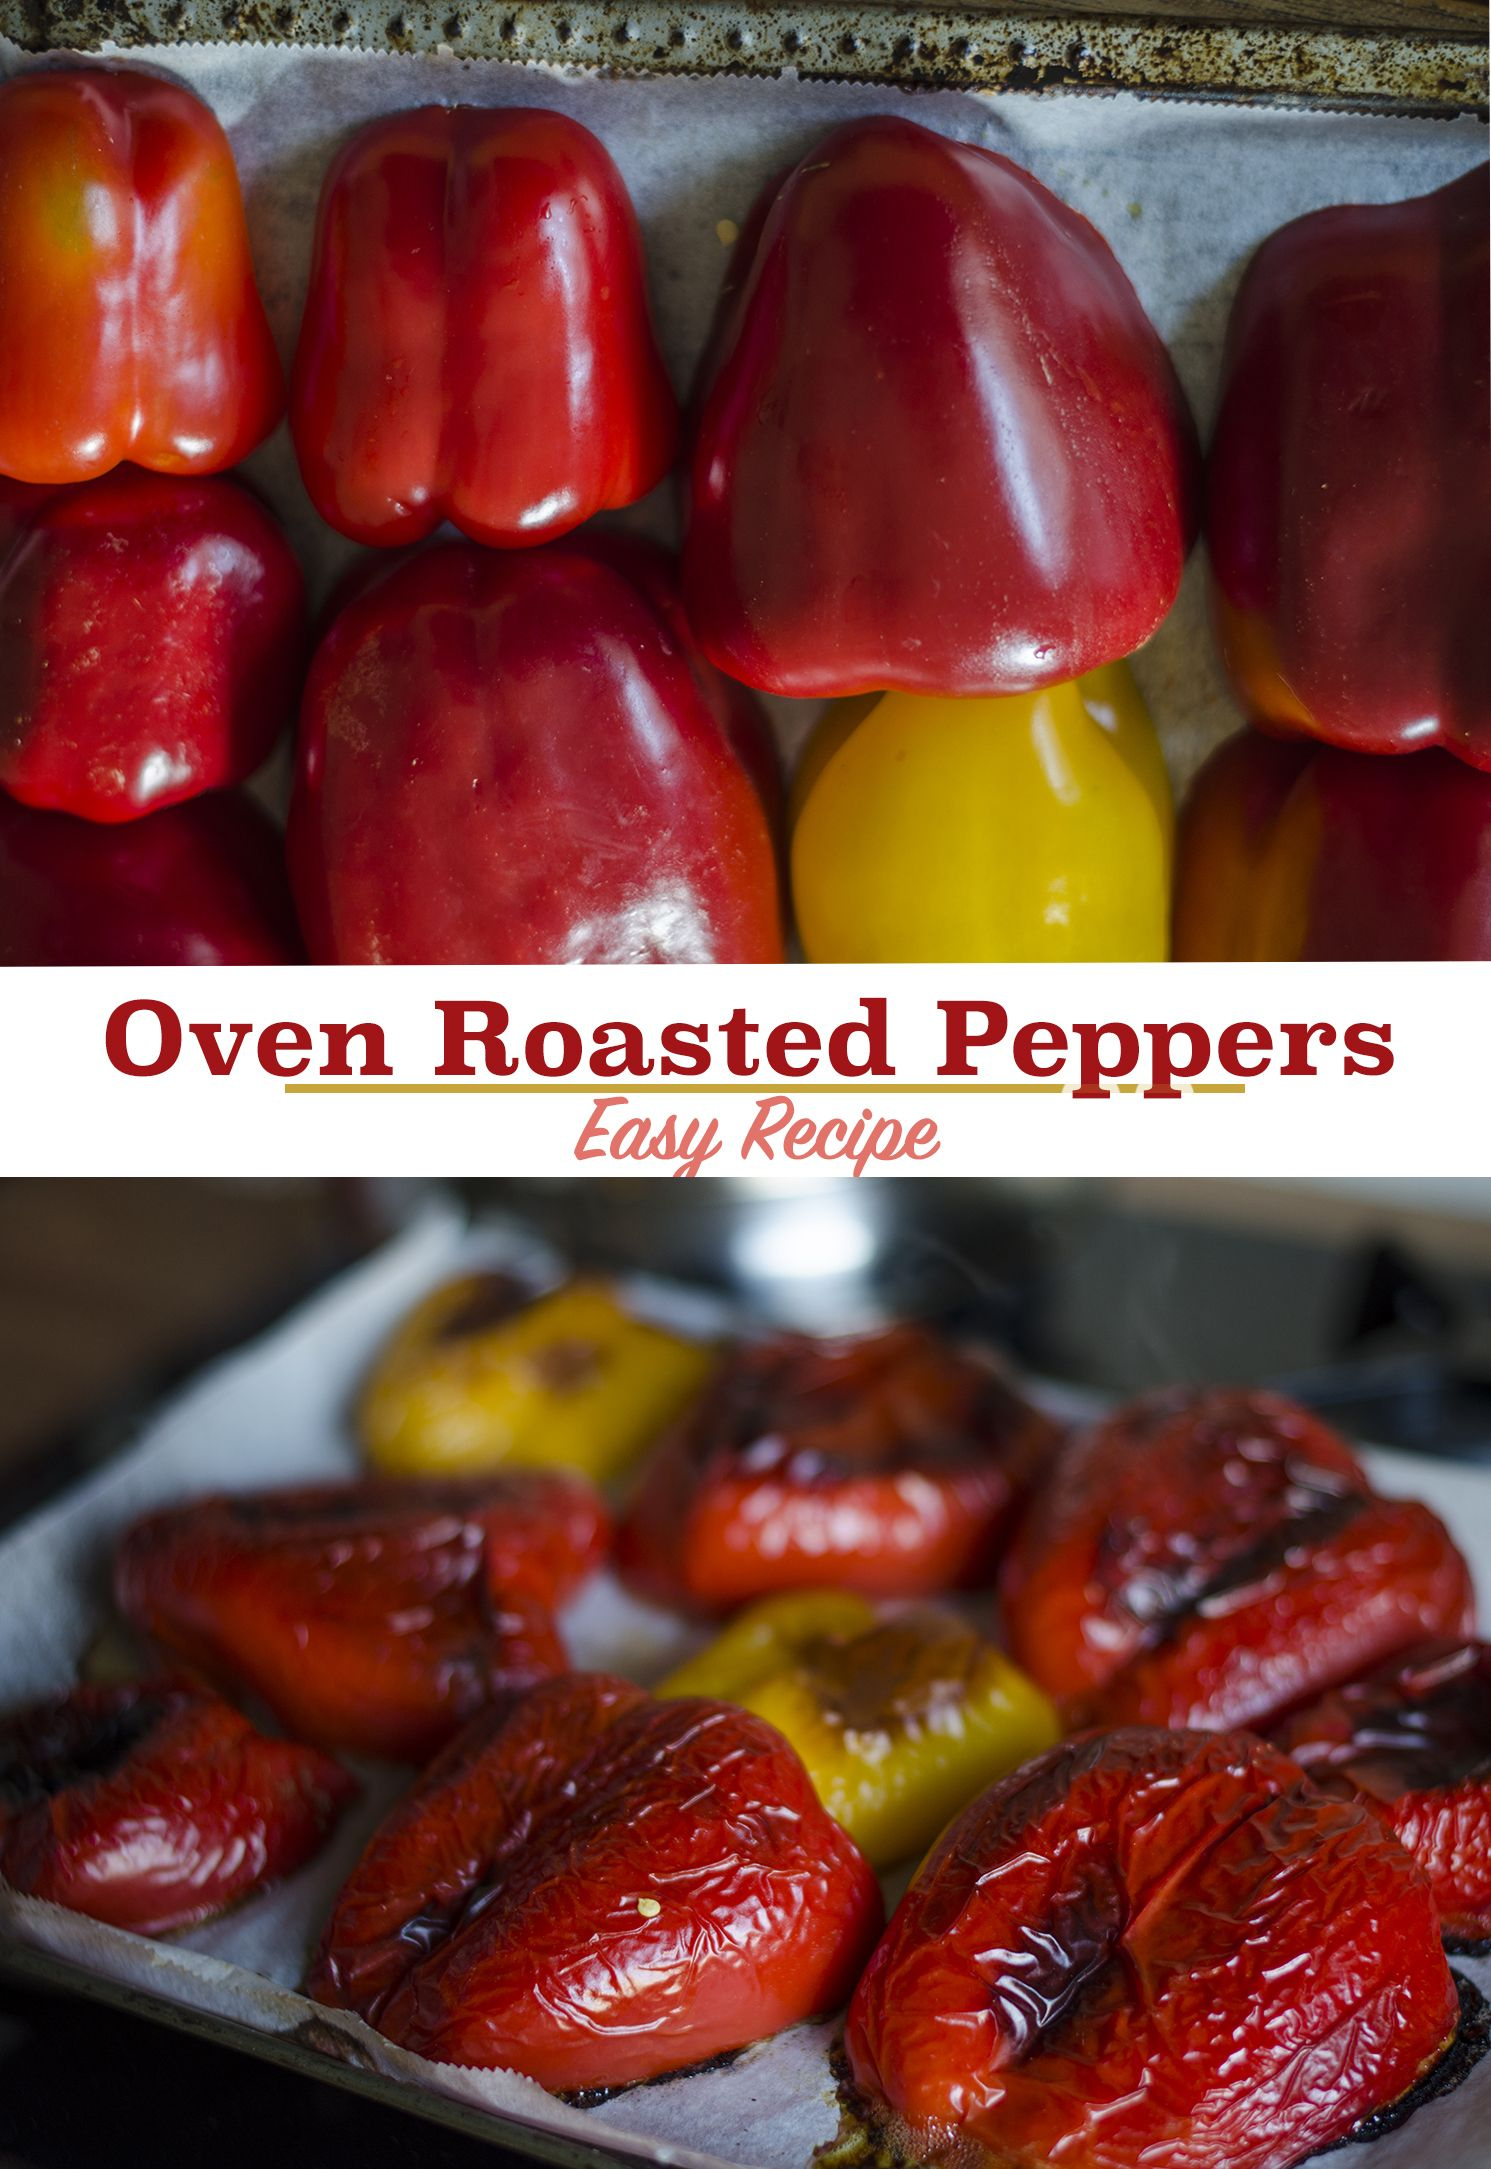 Oven Roasted Bell Peppers Recipe Stuffed Peppers Oven Roasted Peppers Oven Roast